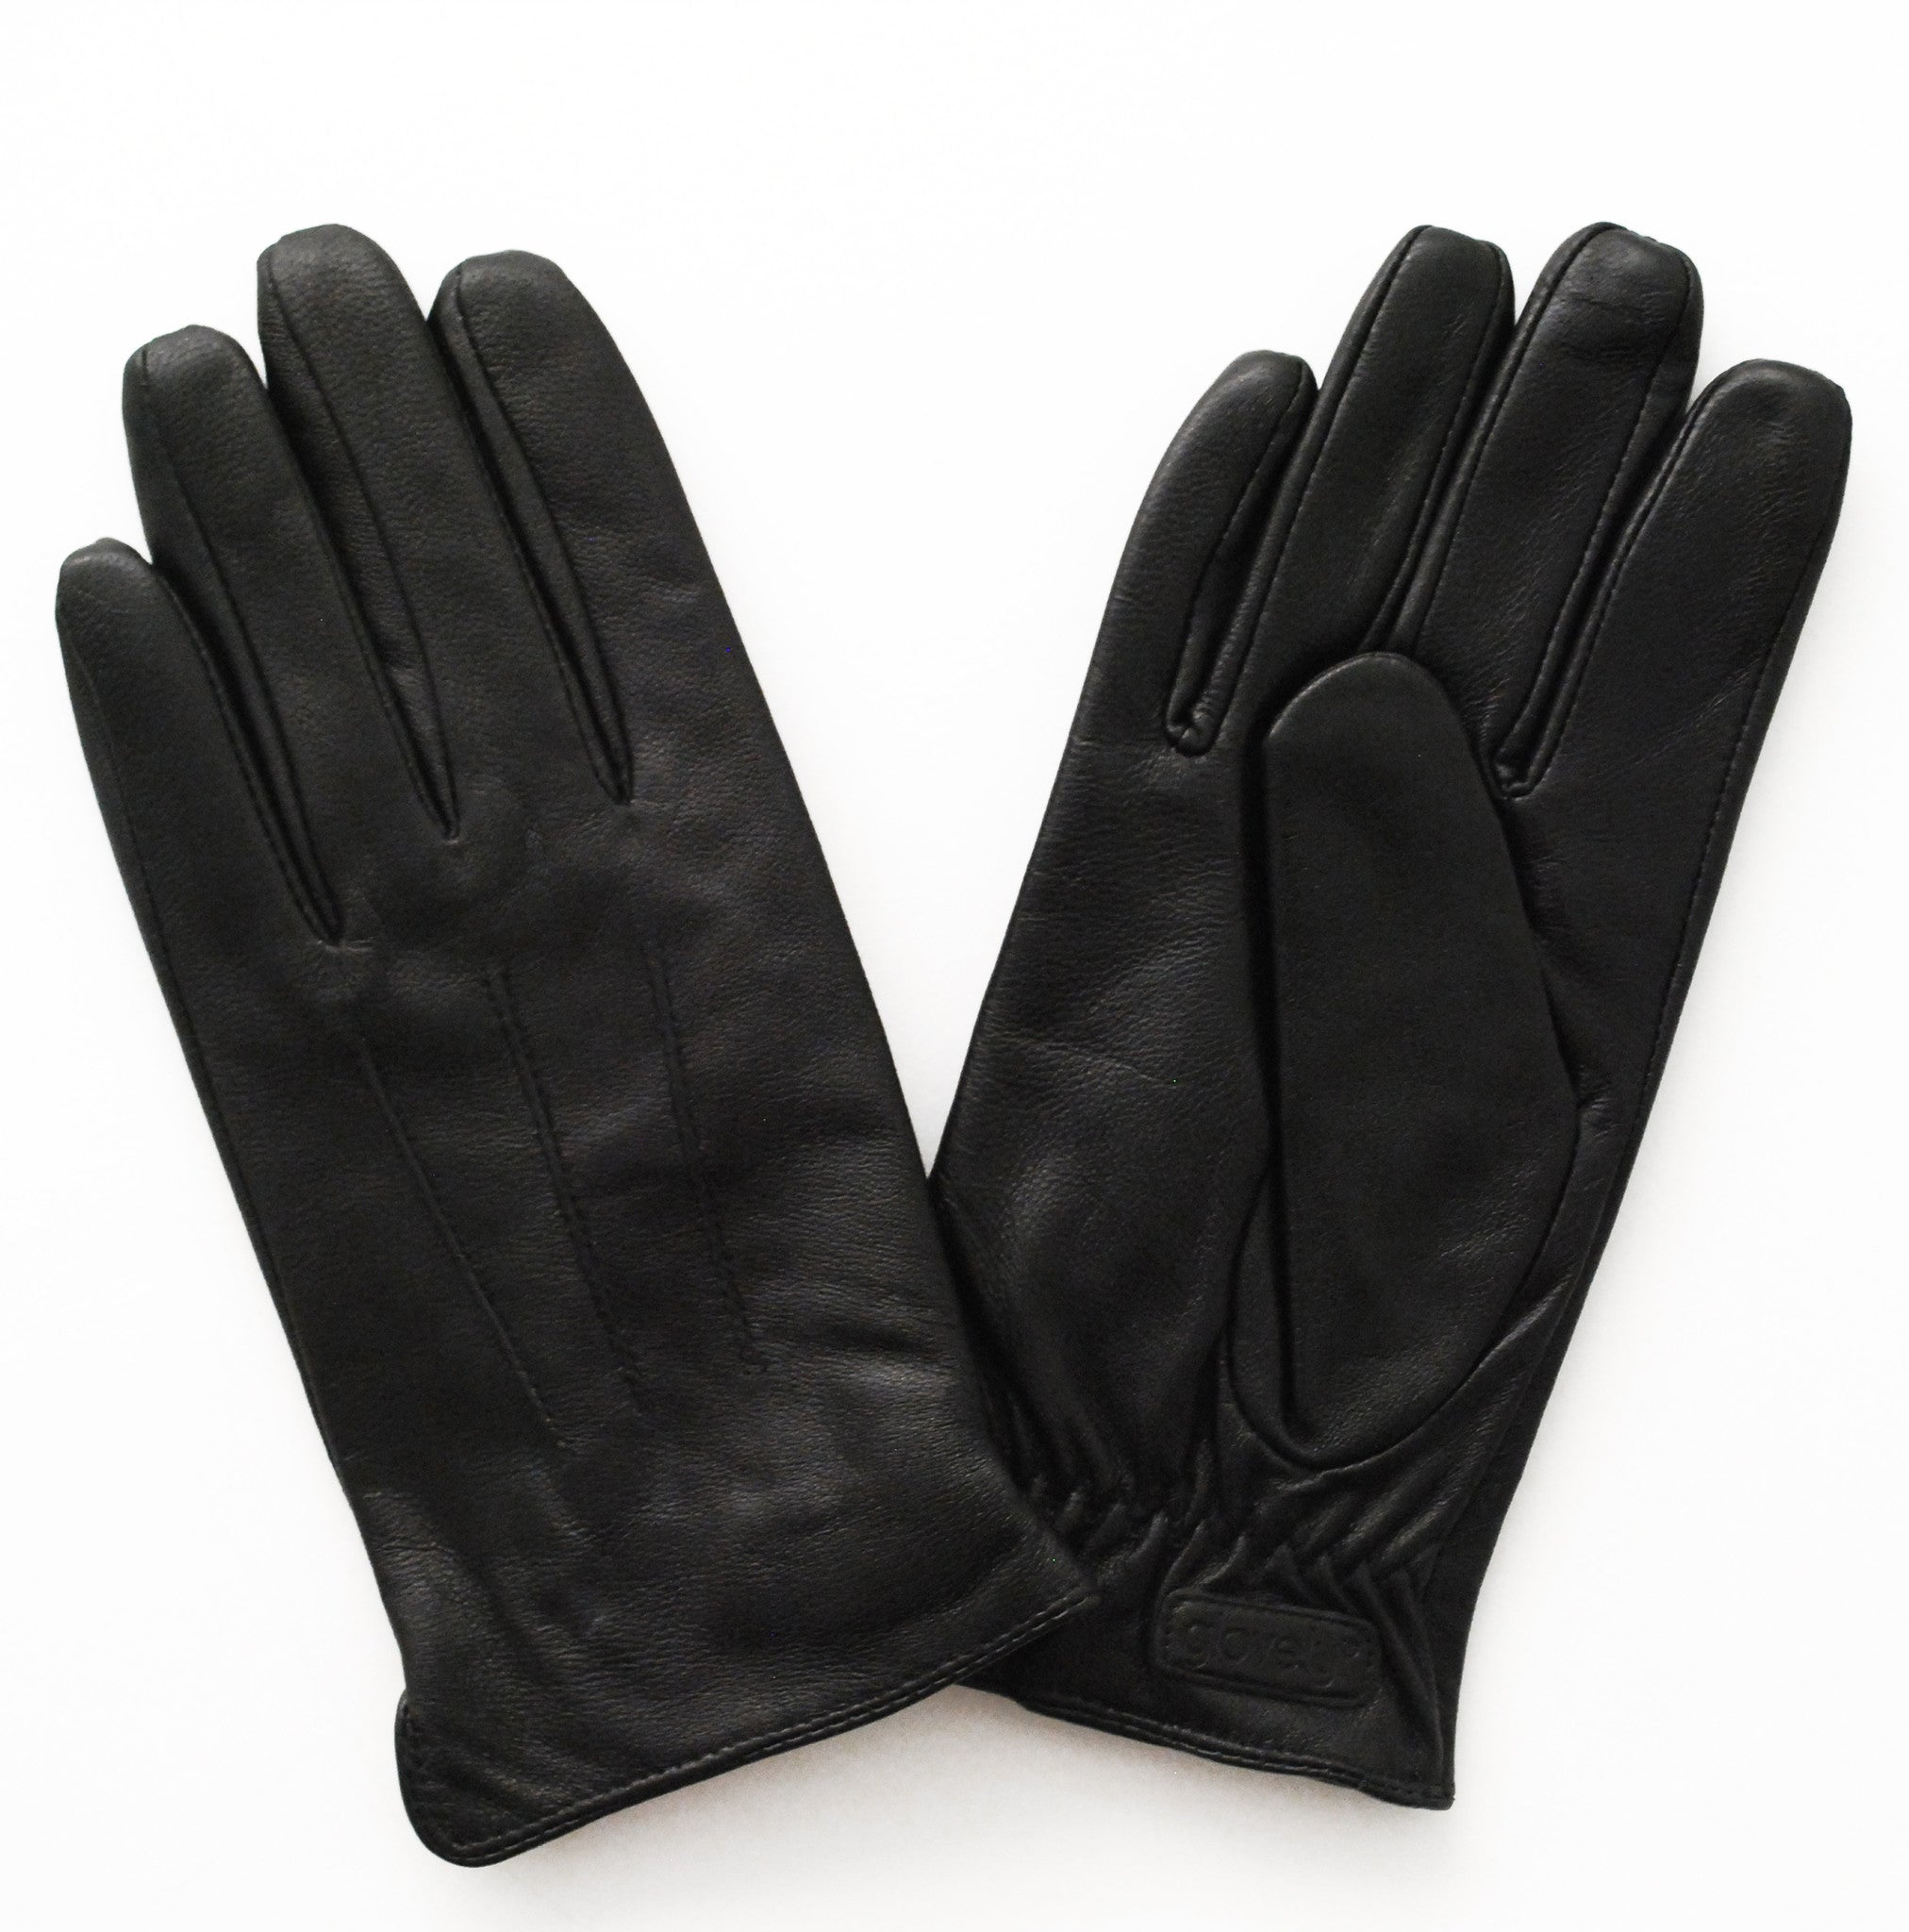 Black gloves mens -  Men S Classic Leather Touch Screen Glove Black